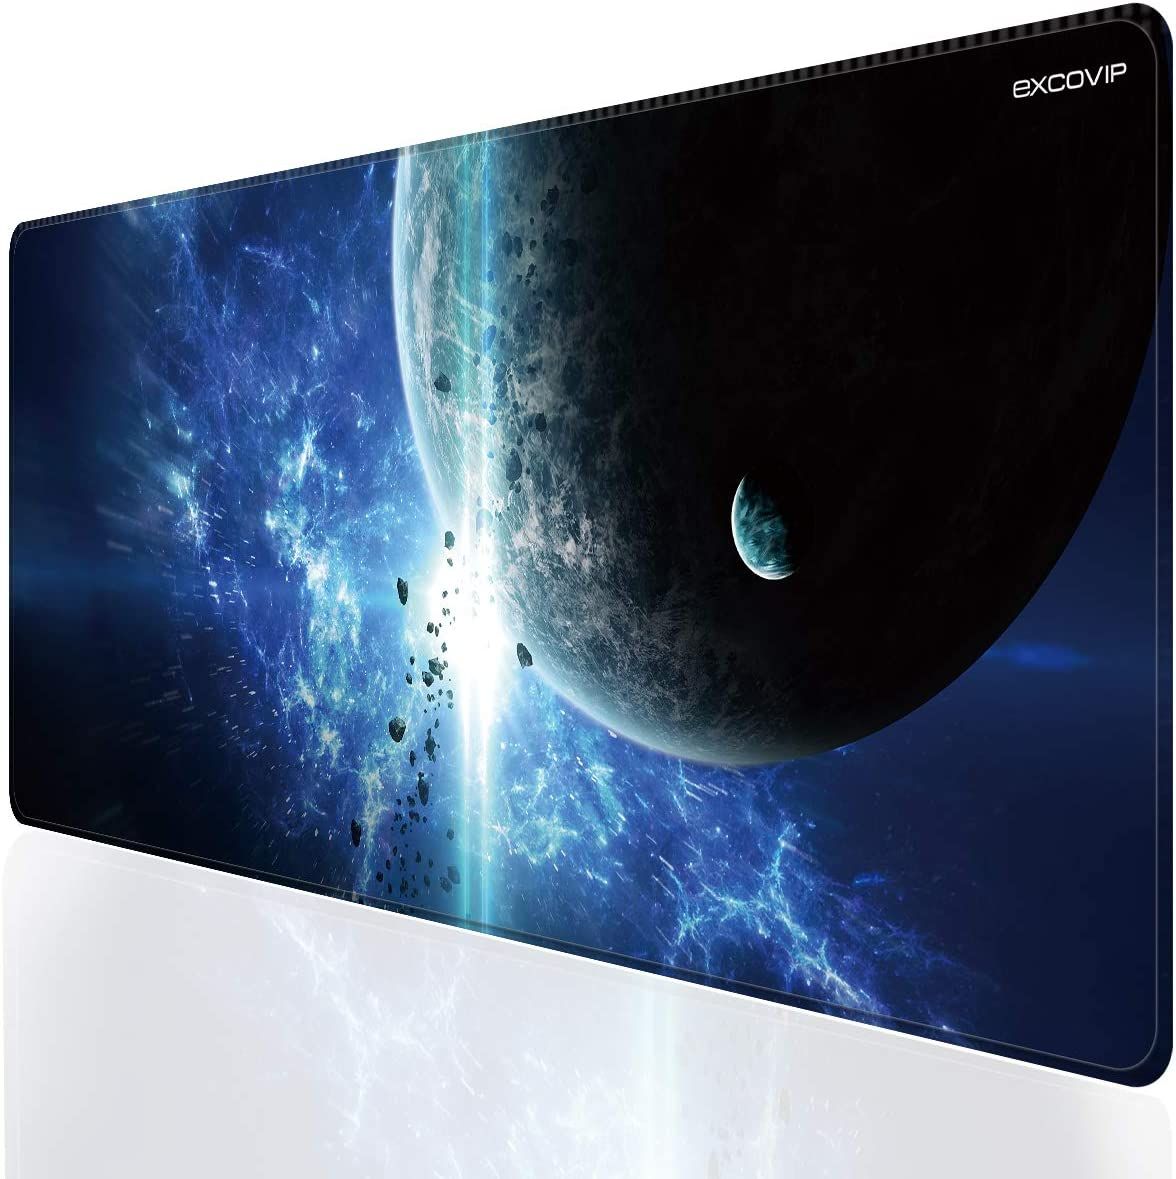 EXCOVIP Extra Extended Gaming Mouse Pad 90×40cm, Large Mouse mat with with Stitched Edge Non-Slip Rubber Base Mousepad for Laptop, Computer & PC, Precise Tracking